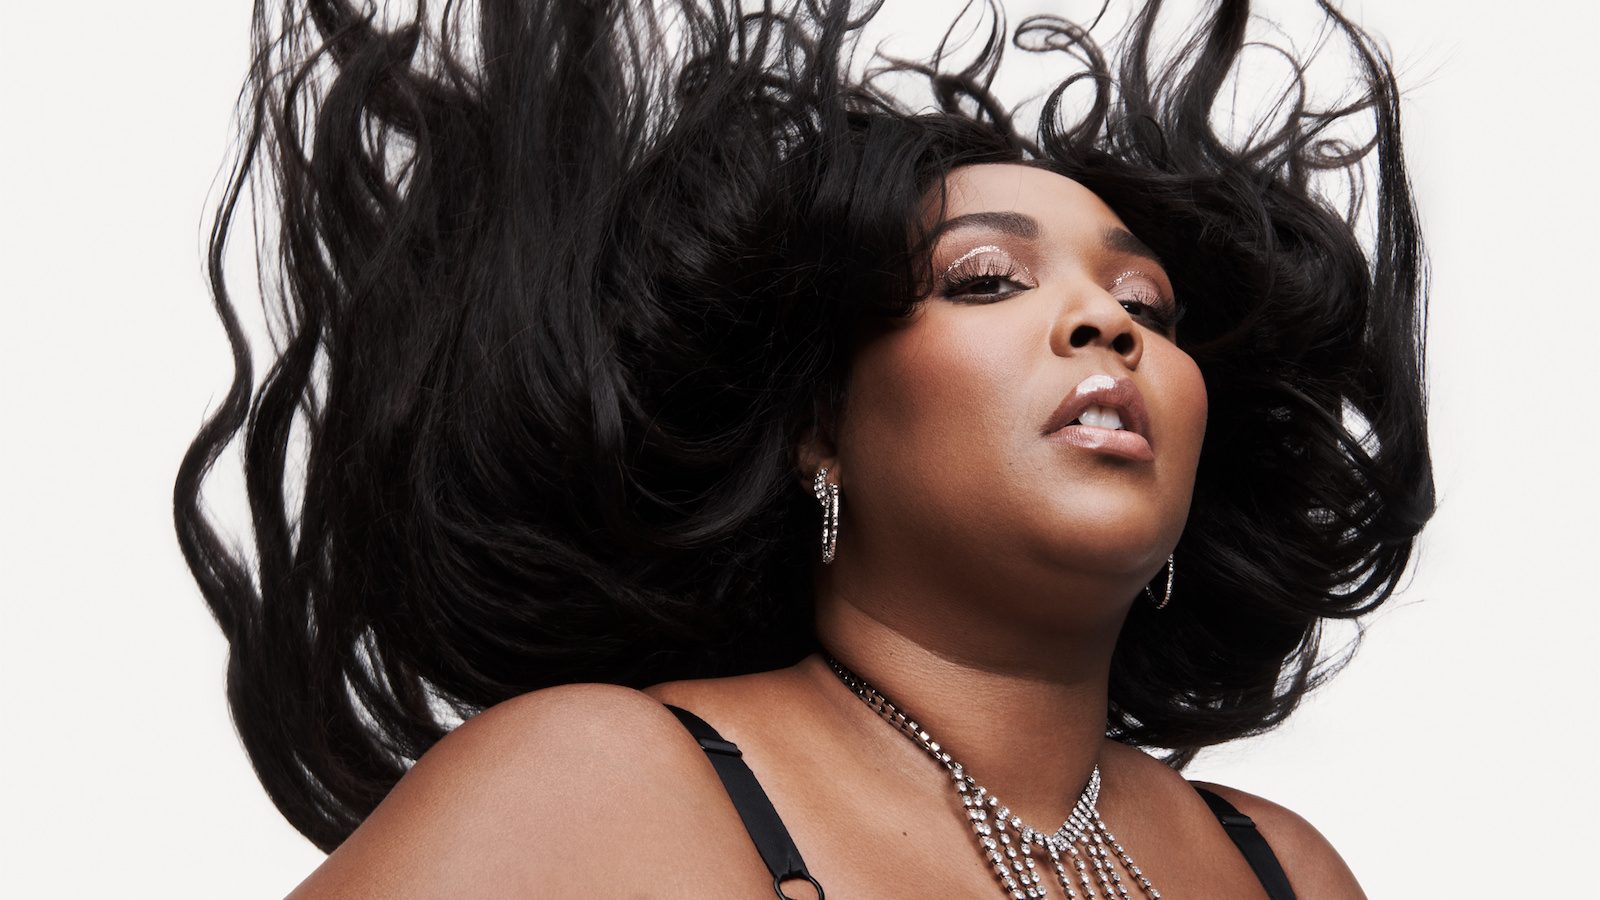 Apple_announces-first-Apple-Music-Awards-Lizzo_120219.jpg